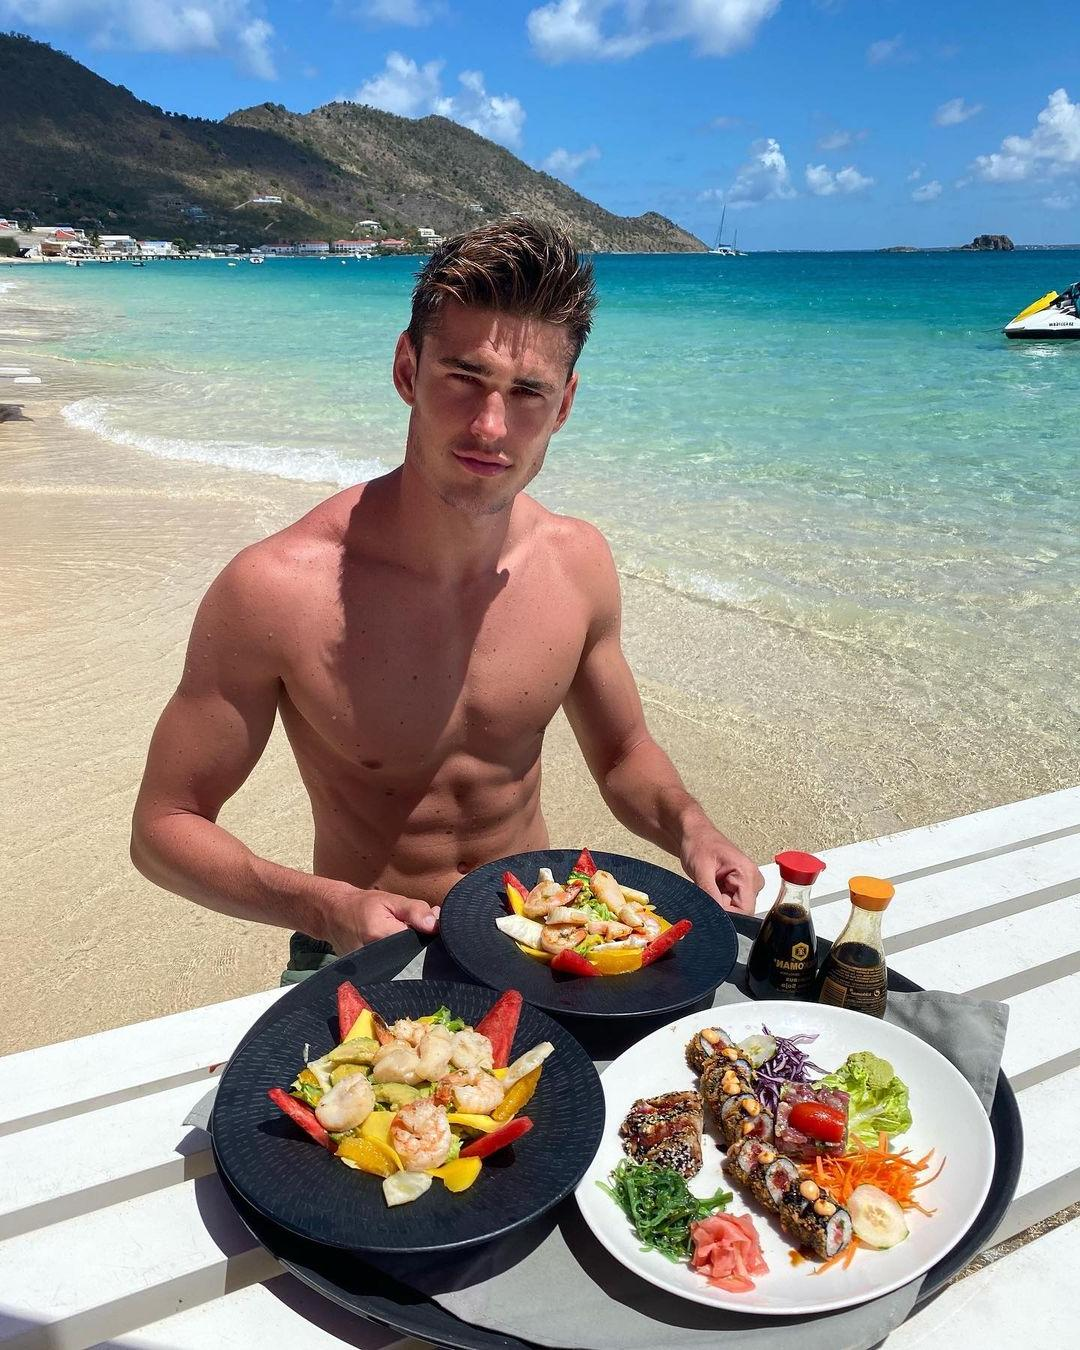 cute-fit-shirtless-guy-victor-perr-sea-vacation-beach-restaurant-eating-food